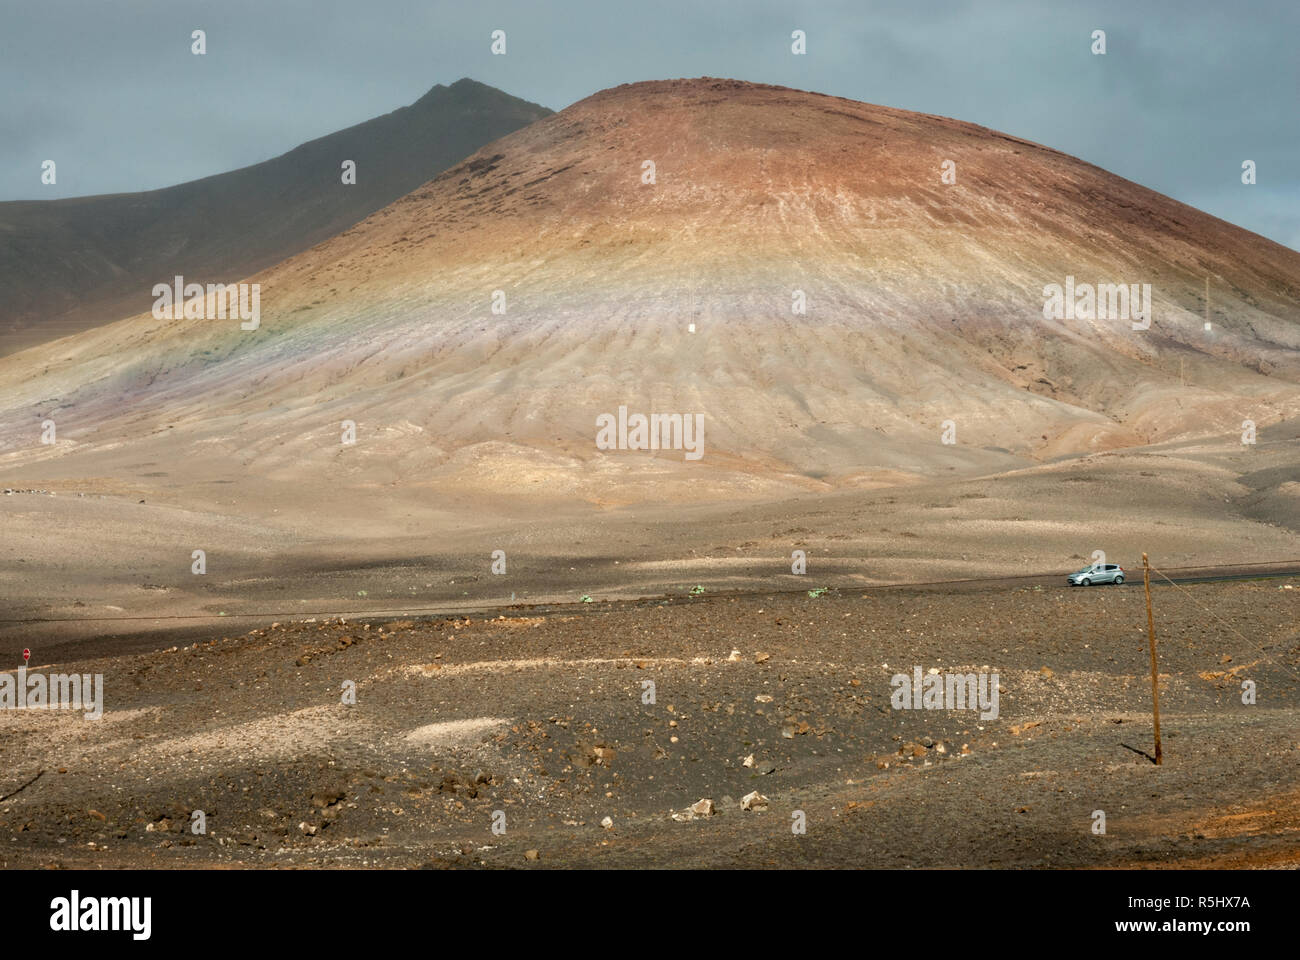 A view from a road en-route to Playa Blanca, Lanzarote, with a dramatic volcano swathed in multi coloured lava and pumice deposits. - Stock Image